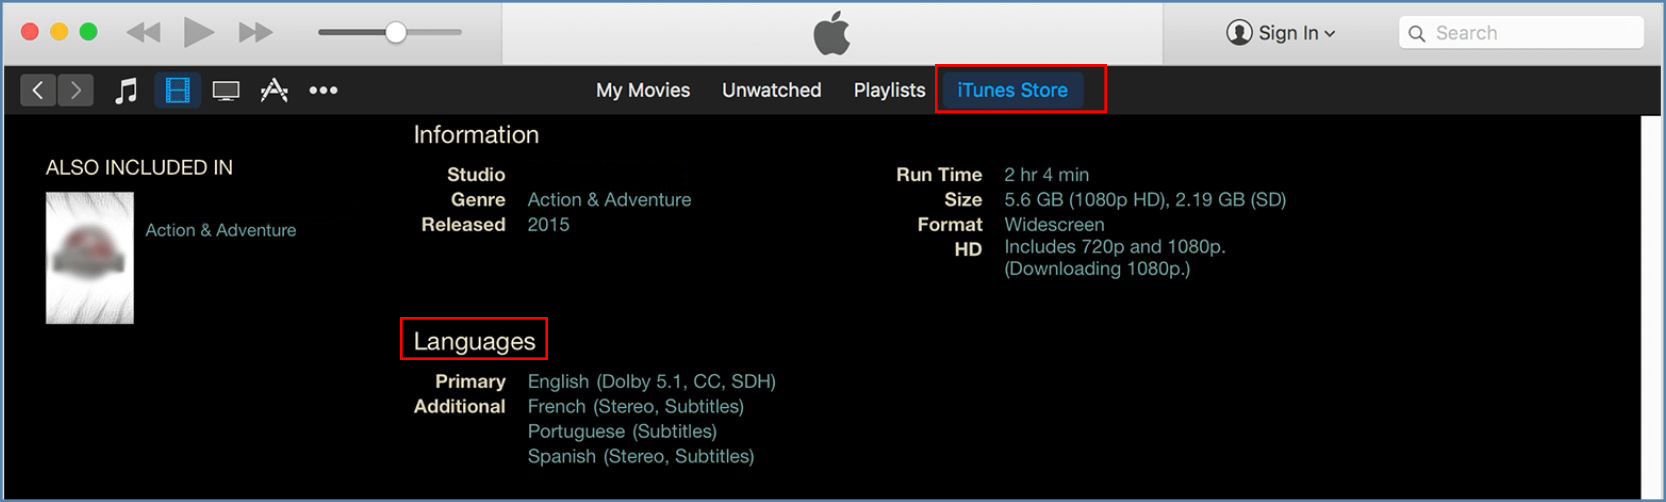 Image of iTunes interface